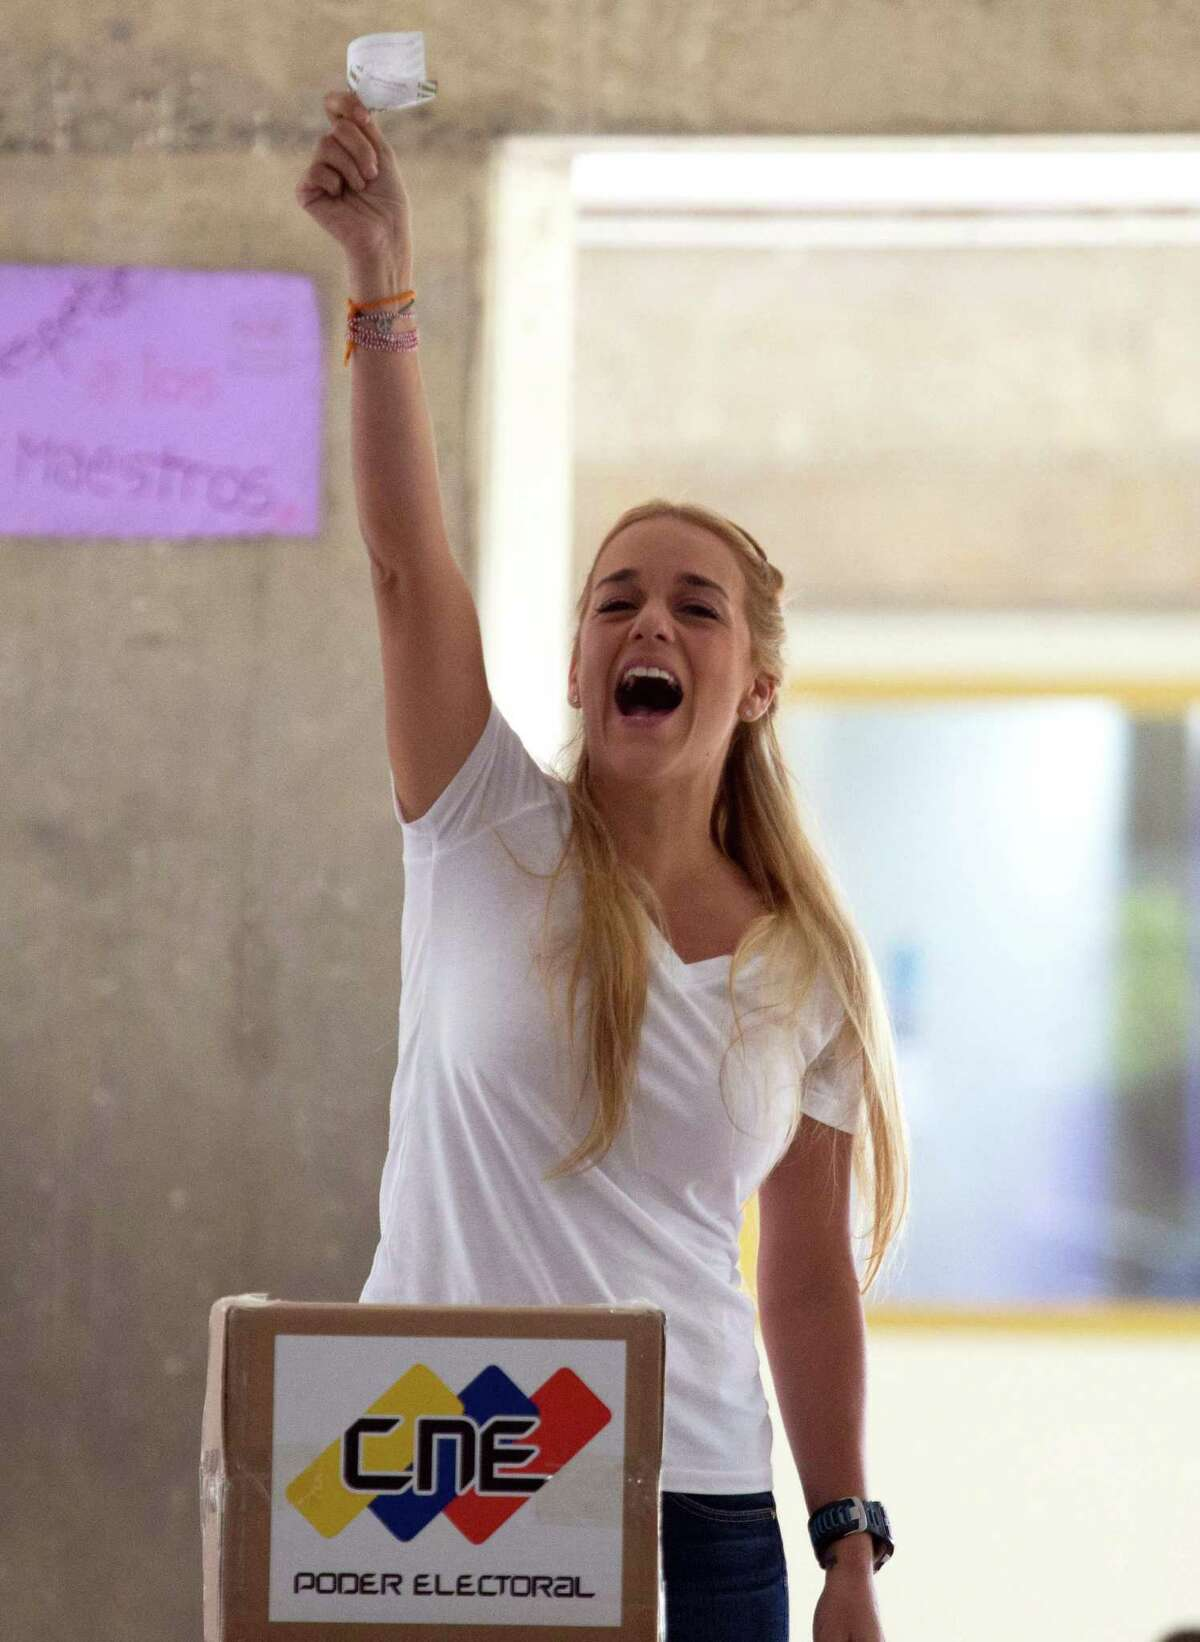 Lilian Tintori, the wife of jailed opposition leader Leopoldo Lopez, yells in Spanish: